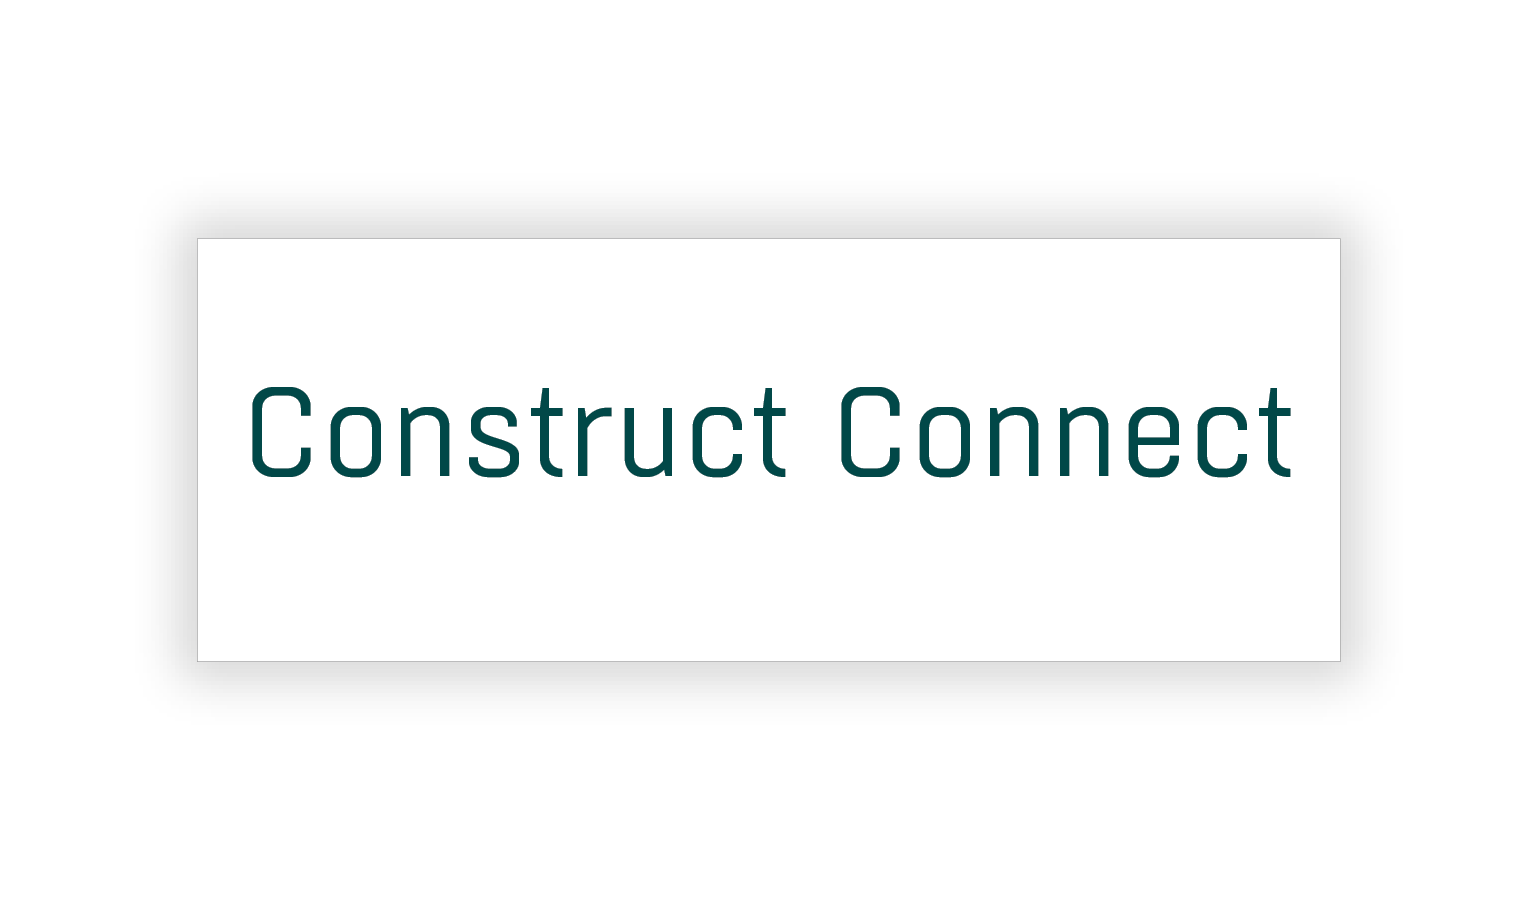 Construct Connect